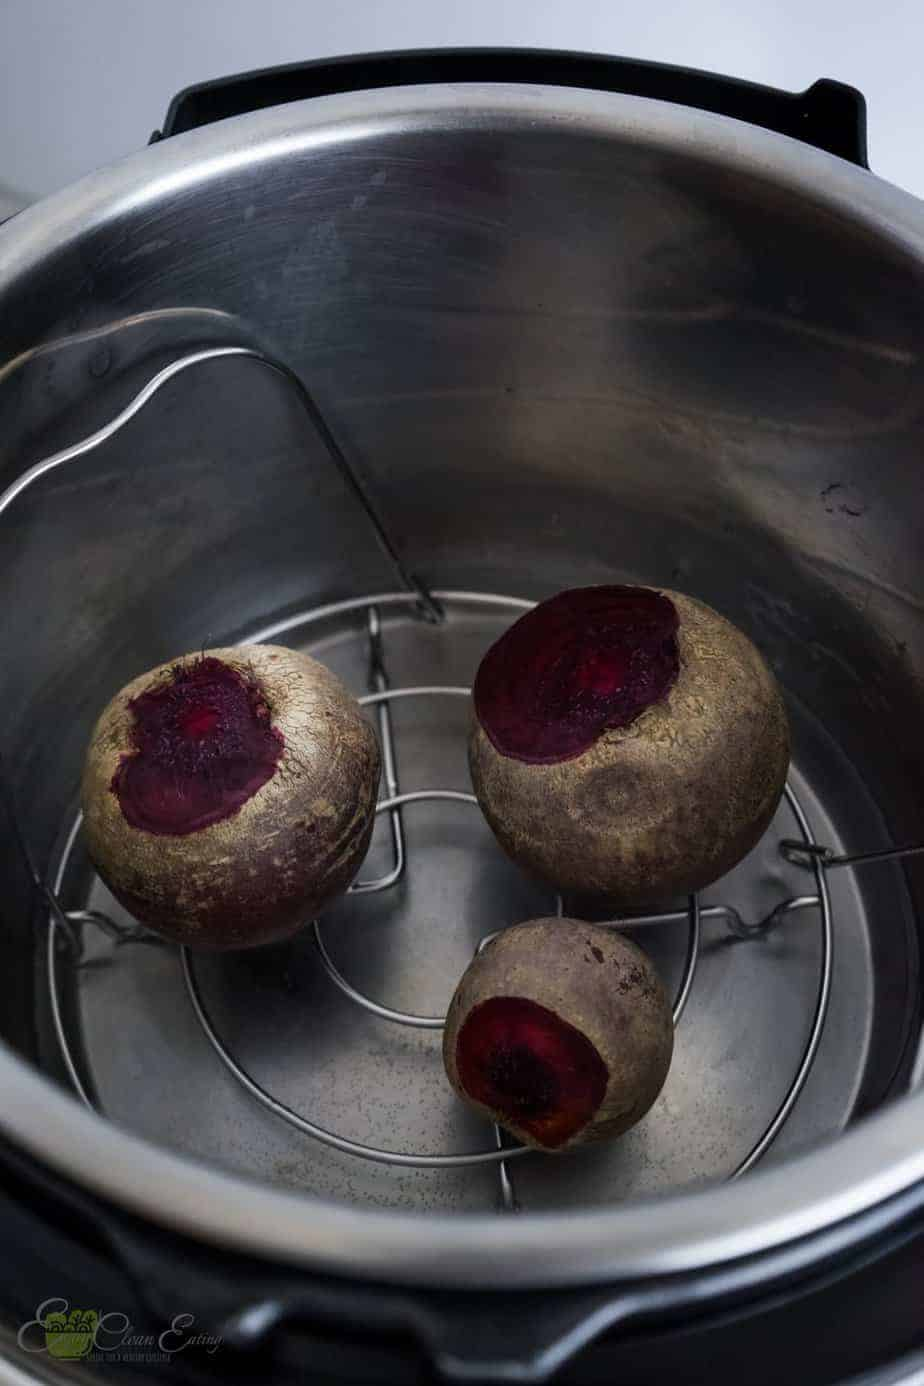 beets before steaming inside the pot